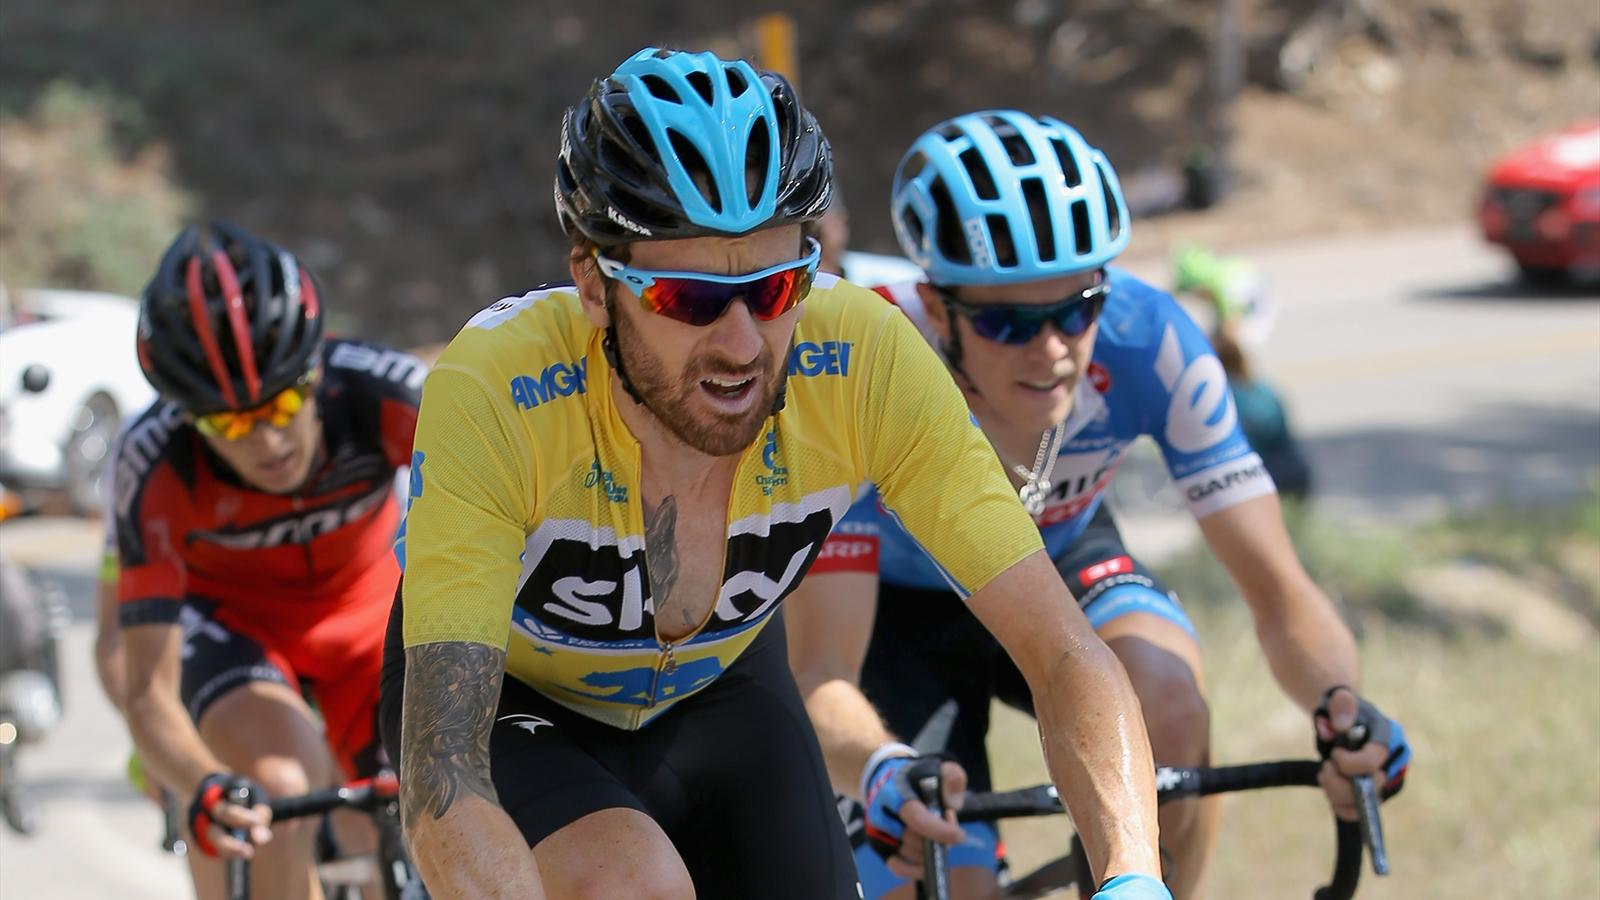 WRIGHTWOOD, CA - MAY 16: Sir Bradley Wiggins (C) of Great Britain riding for Team Sky defends the overall race leader's yellow jersey